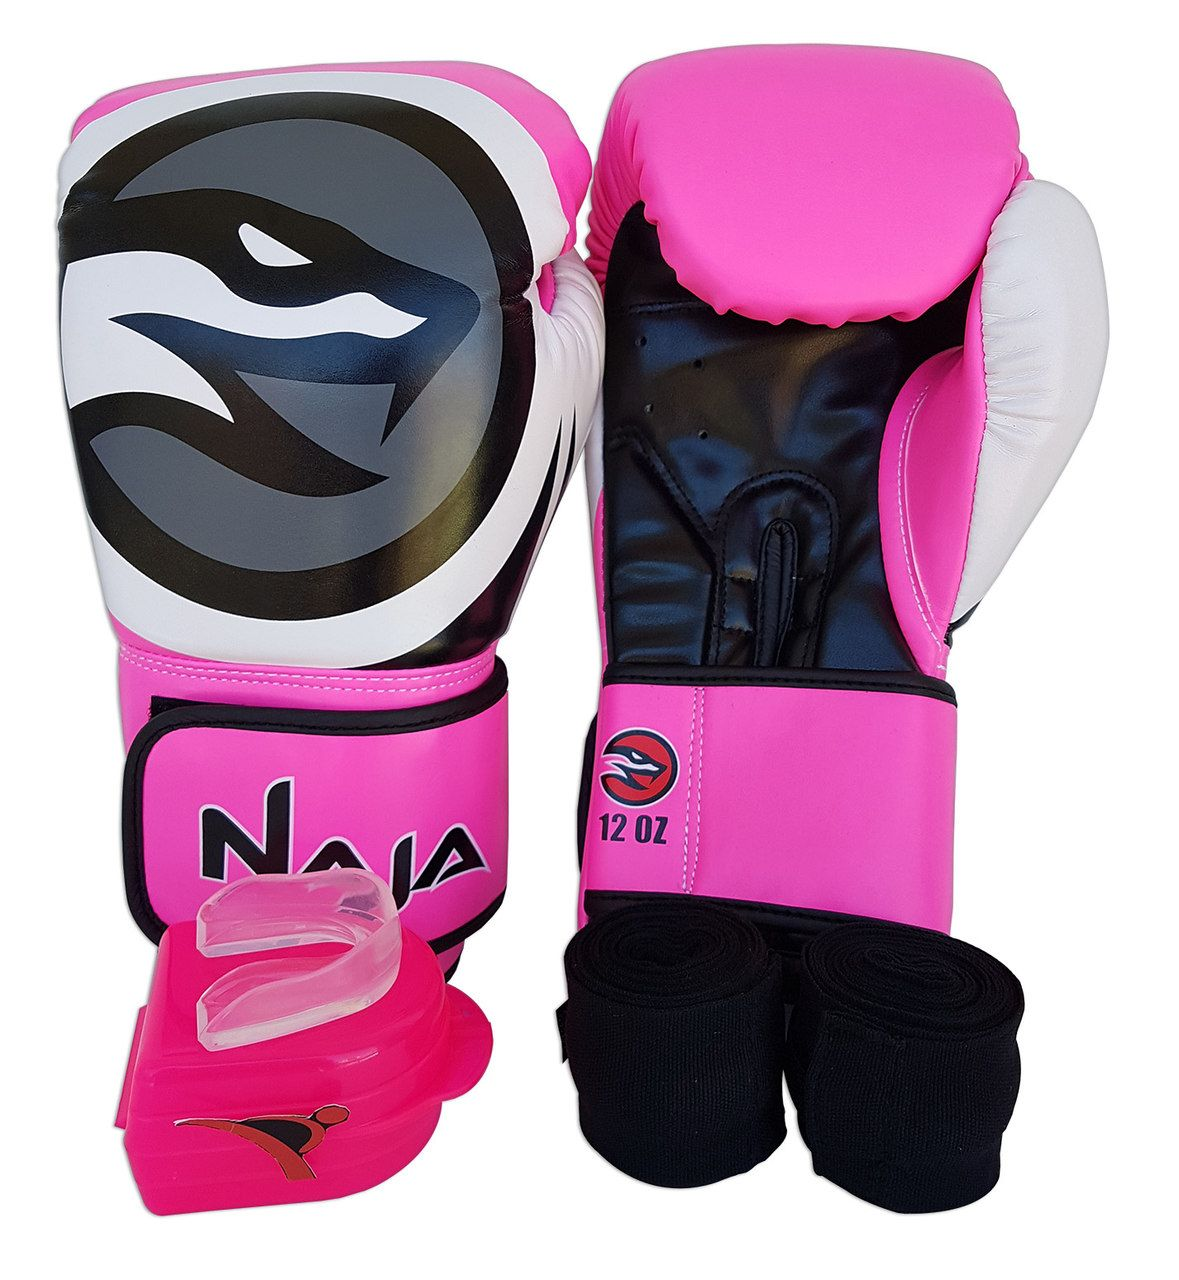 Kit De Boxe / Muay Thai Feminino 12oz - Pink - Colors - Naja  - PRALUTA SHOP